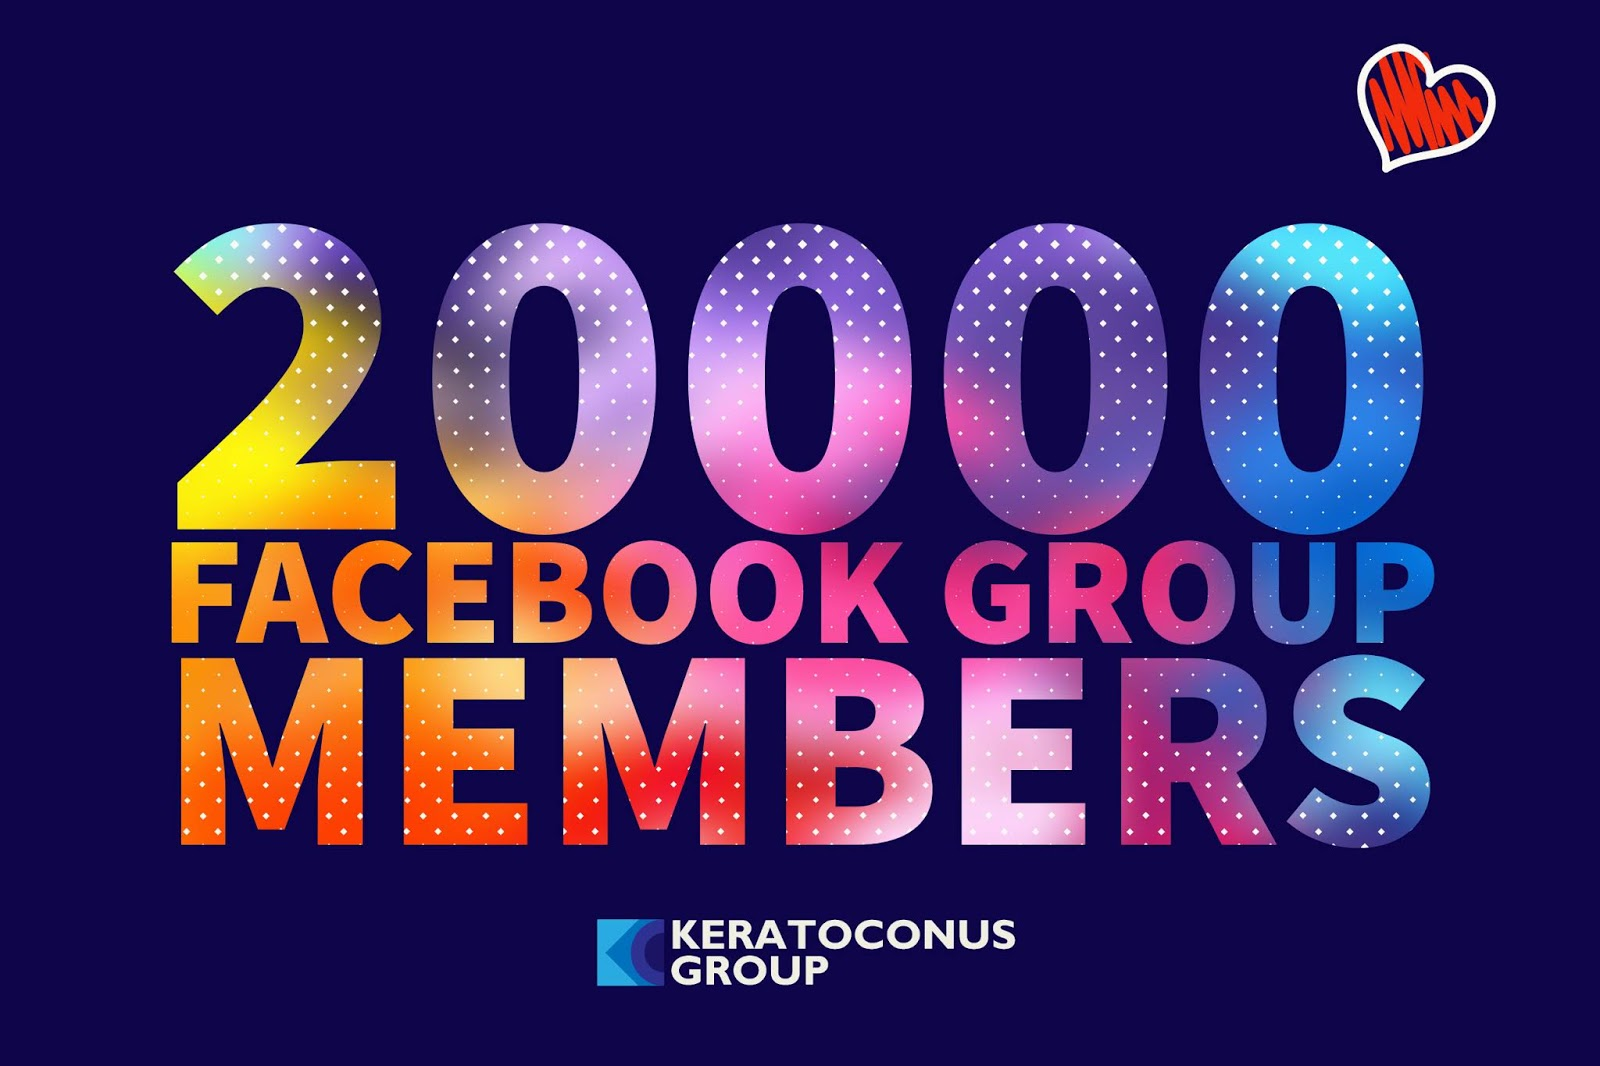 Keratoconus Group's private Facebook group now has more than 20,000 members